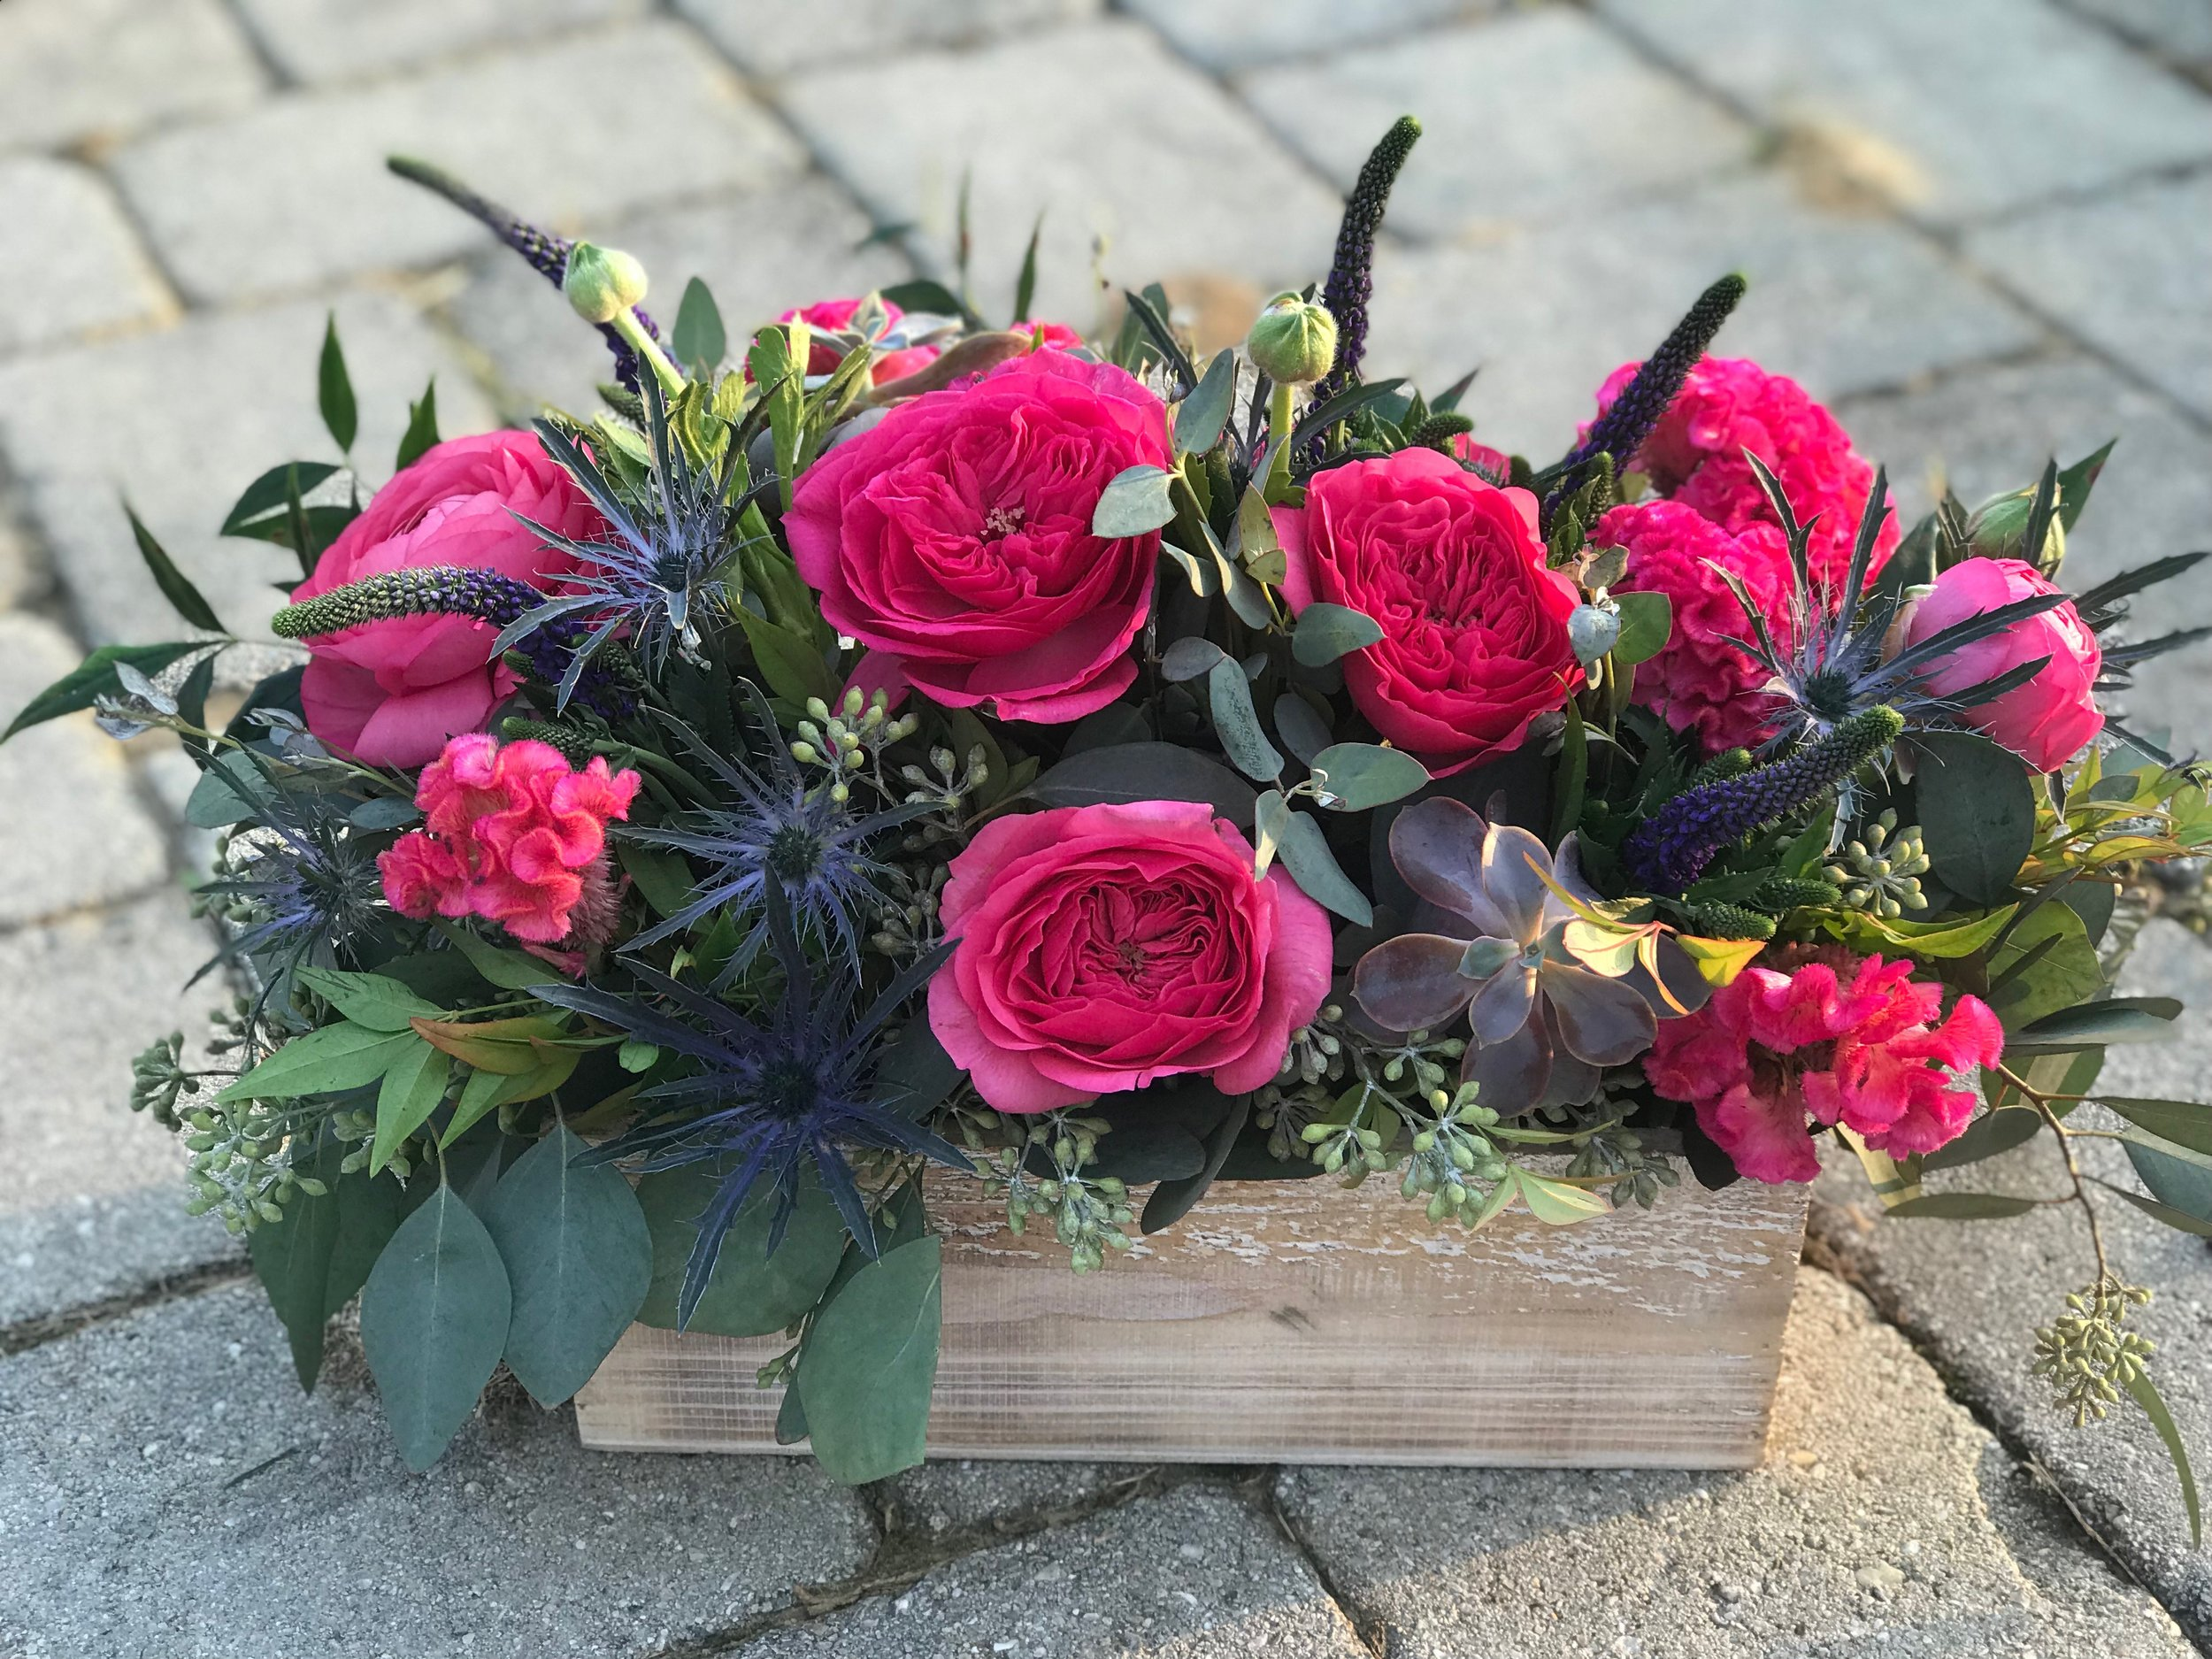 Send Flowers - Local Deliveries & Online Orders